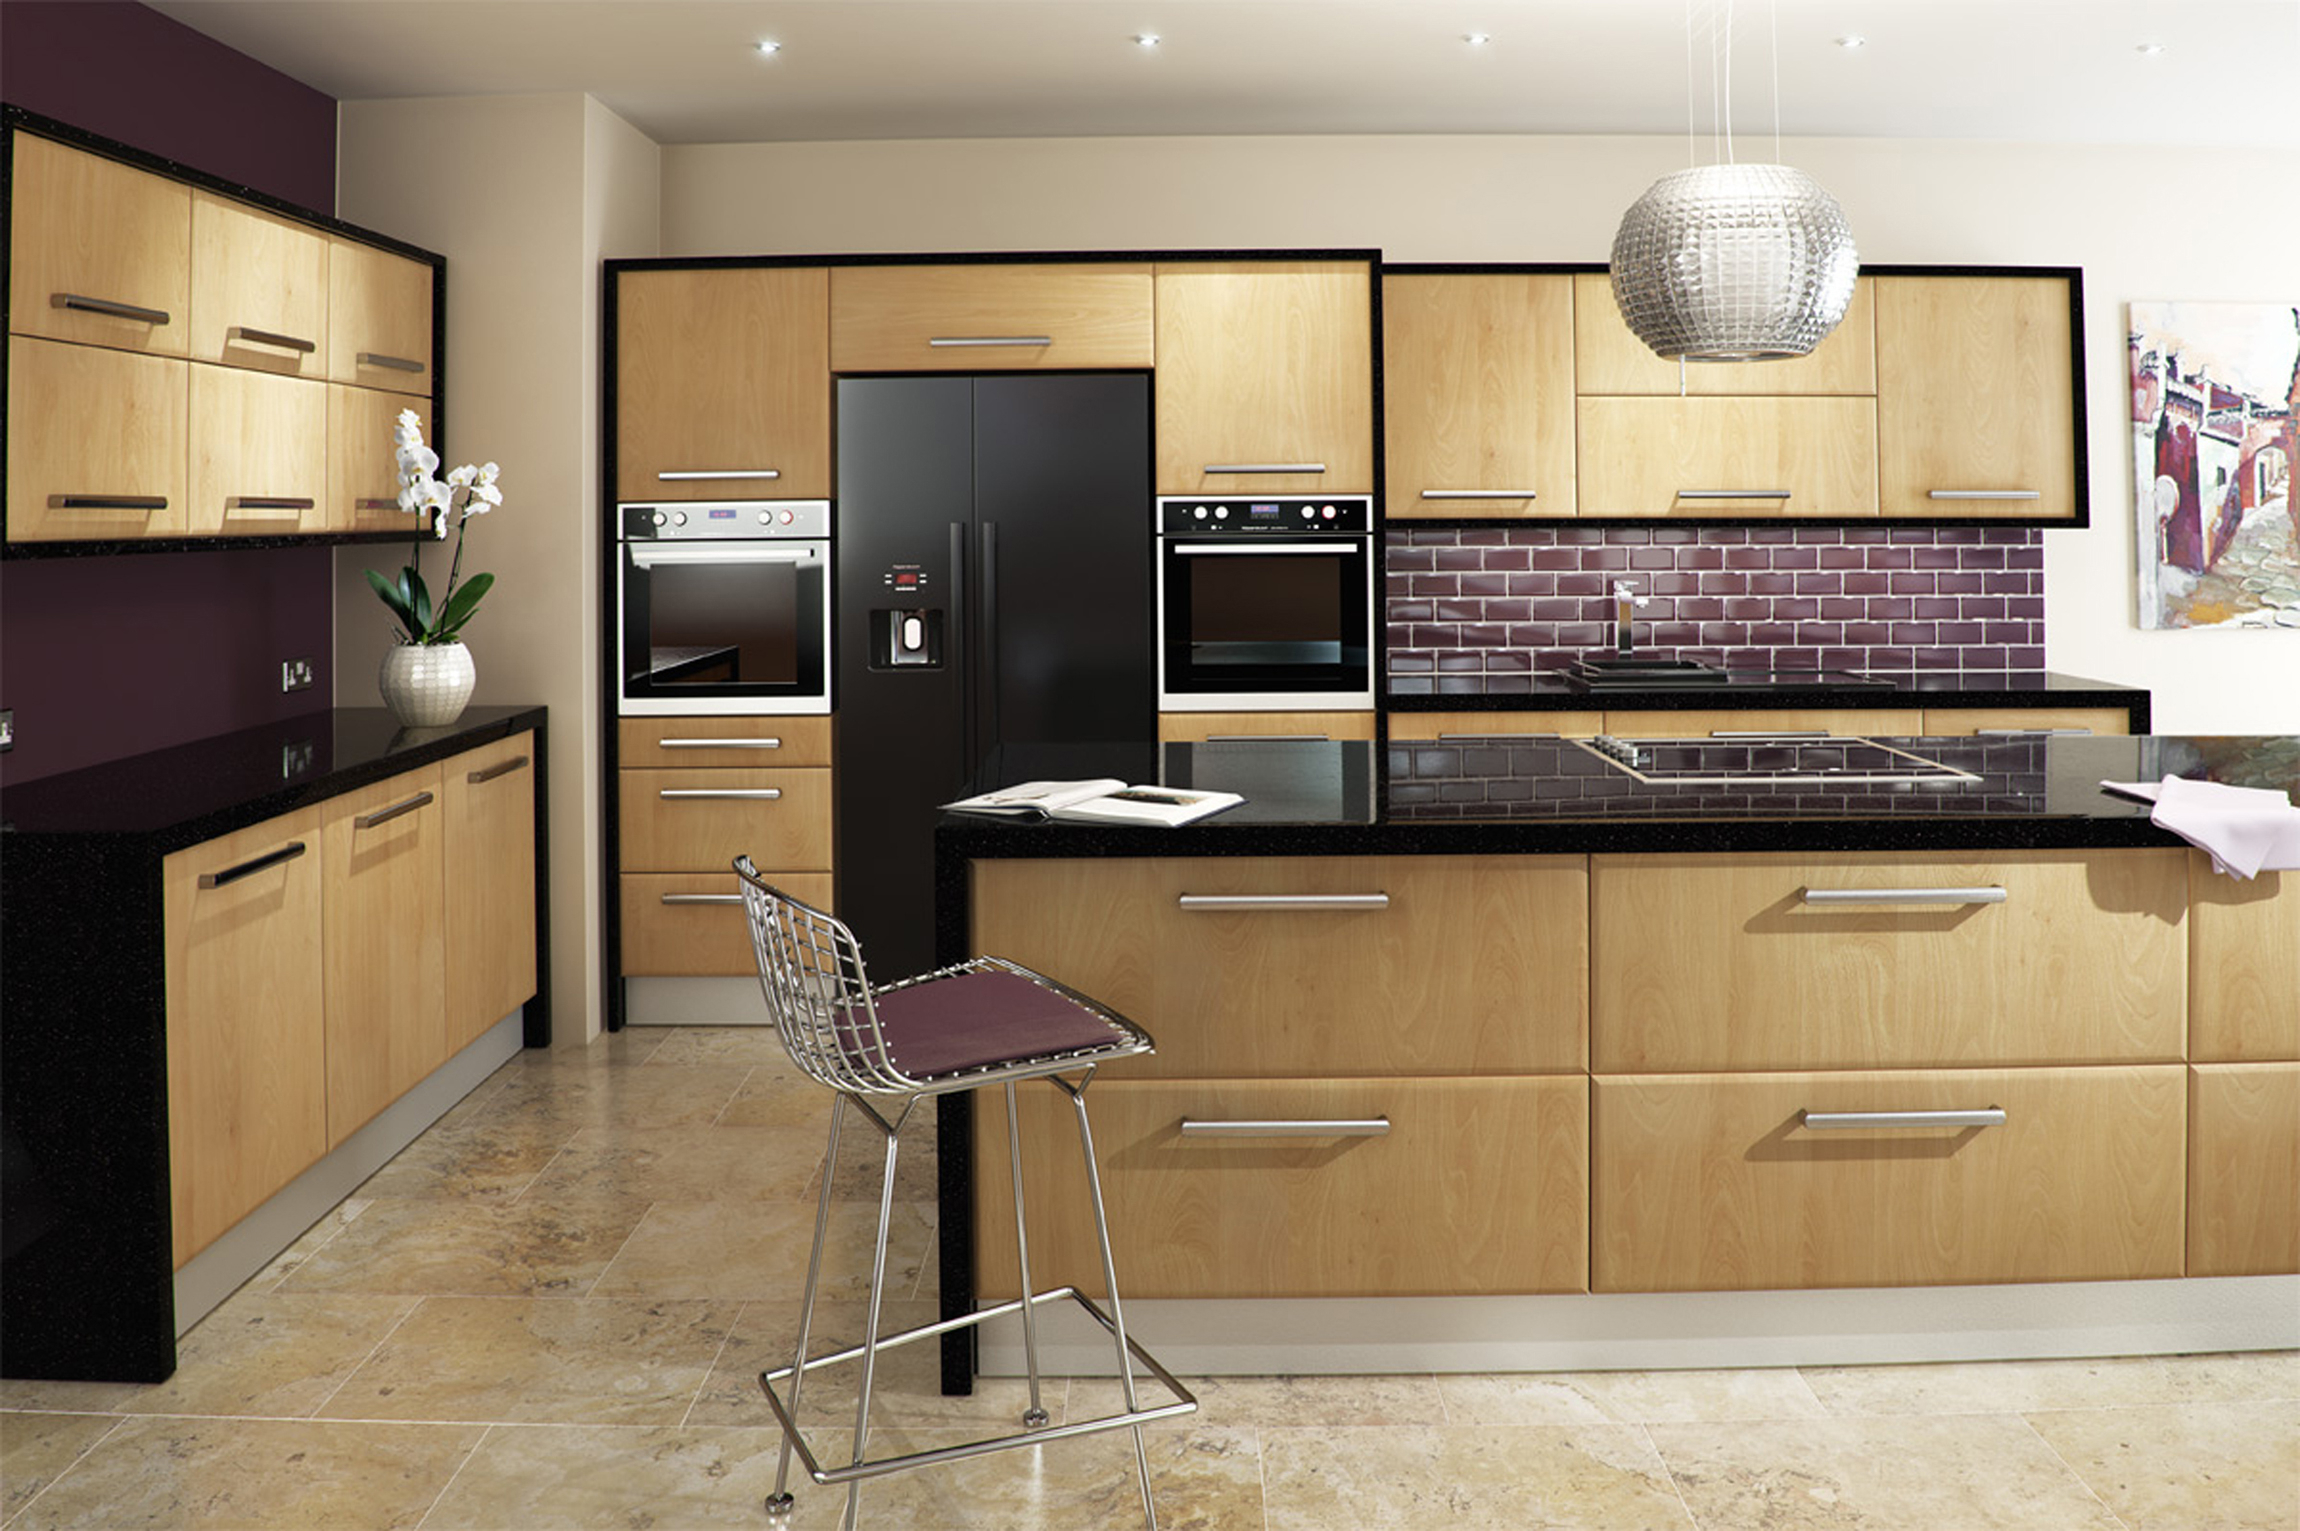 Modern Kitchen With Purple Color (Image 31 of 31)